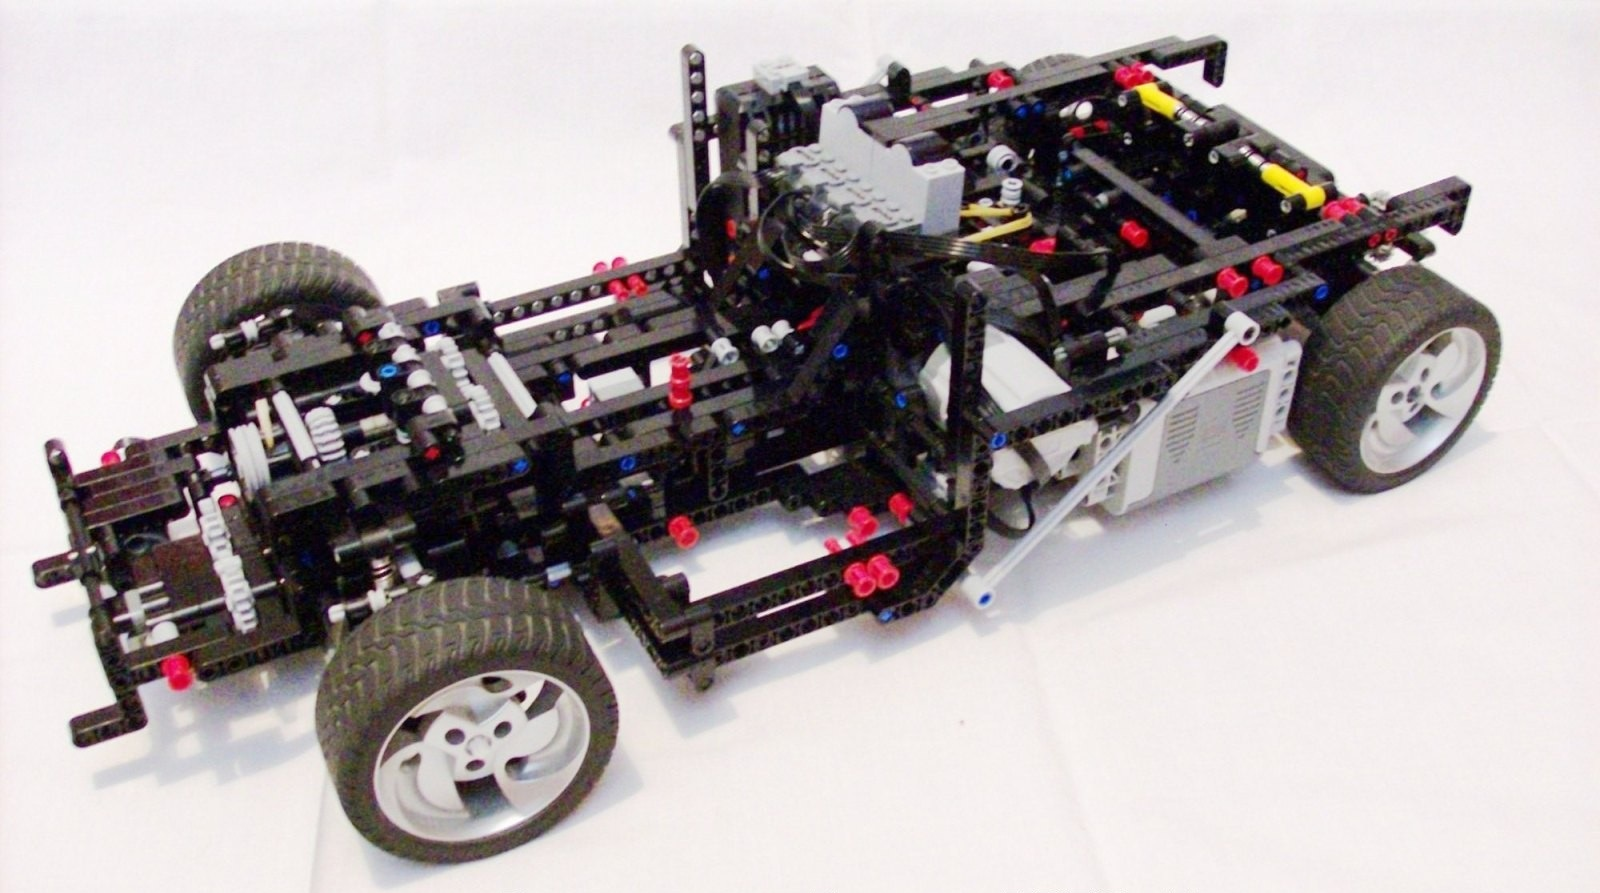 Sheepo S Garage Supercar 2009 Complete Chassis